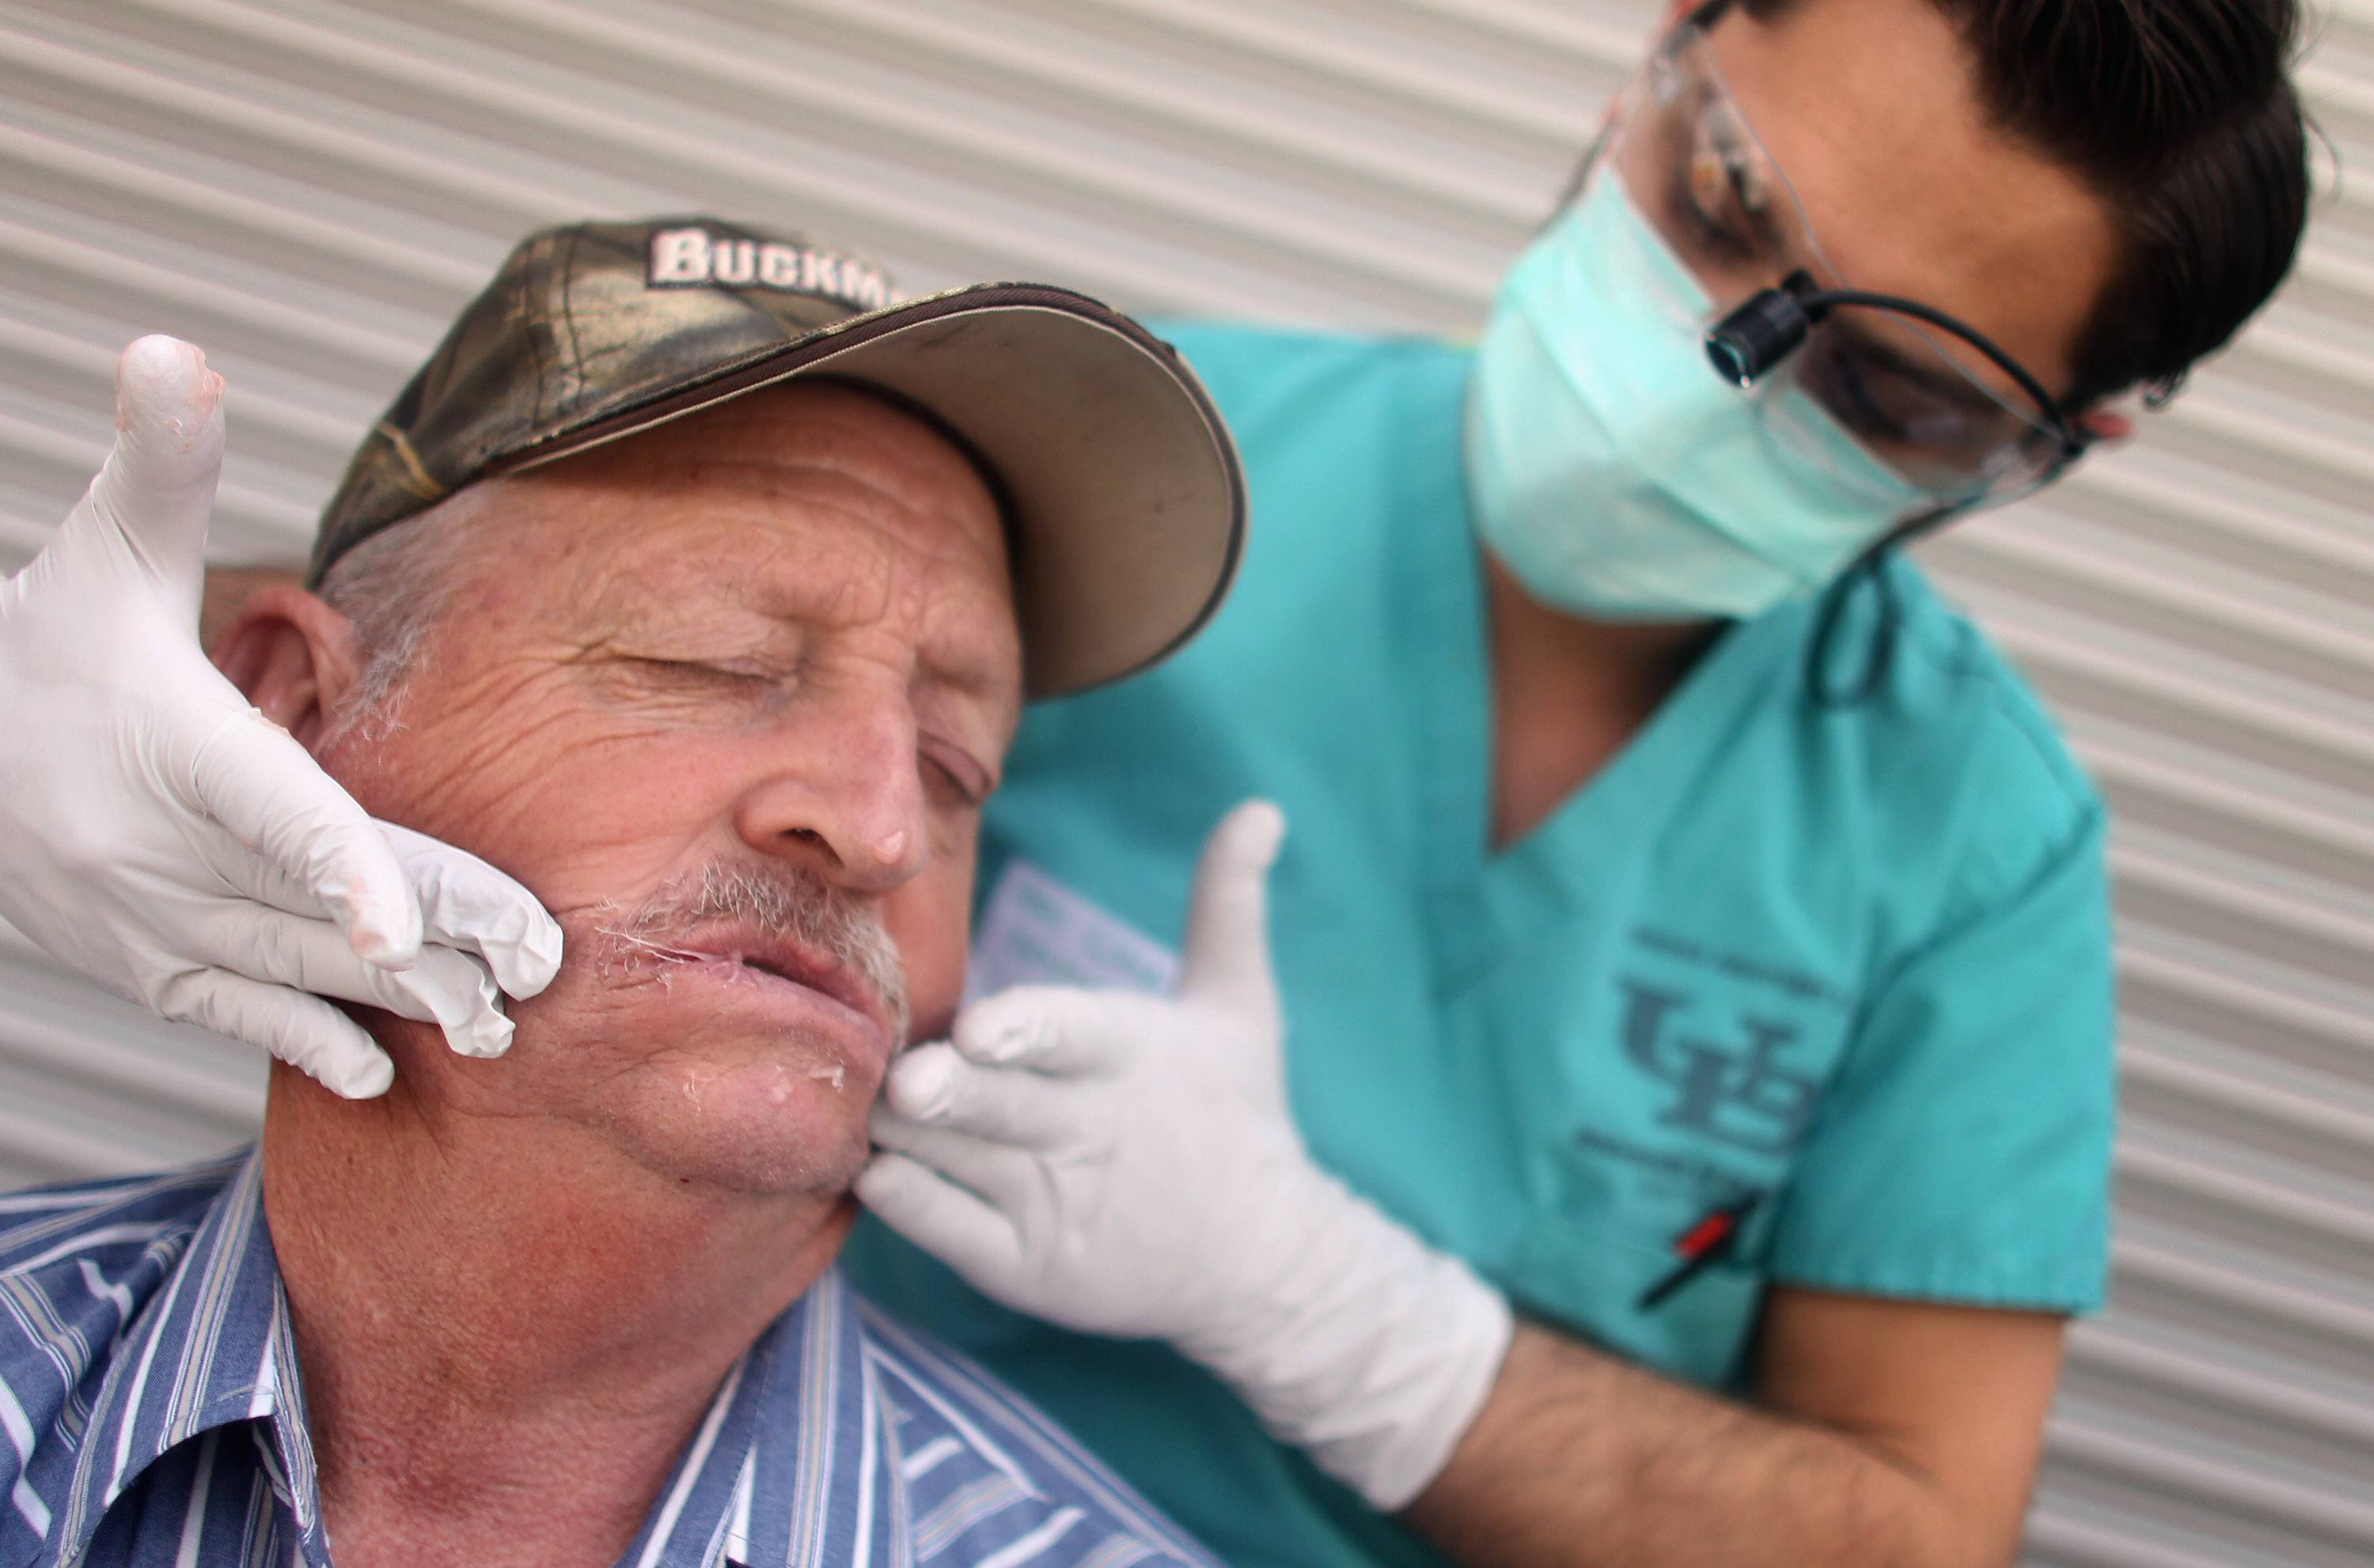 A patient receives dental care at a Tennessee clinic